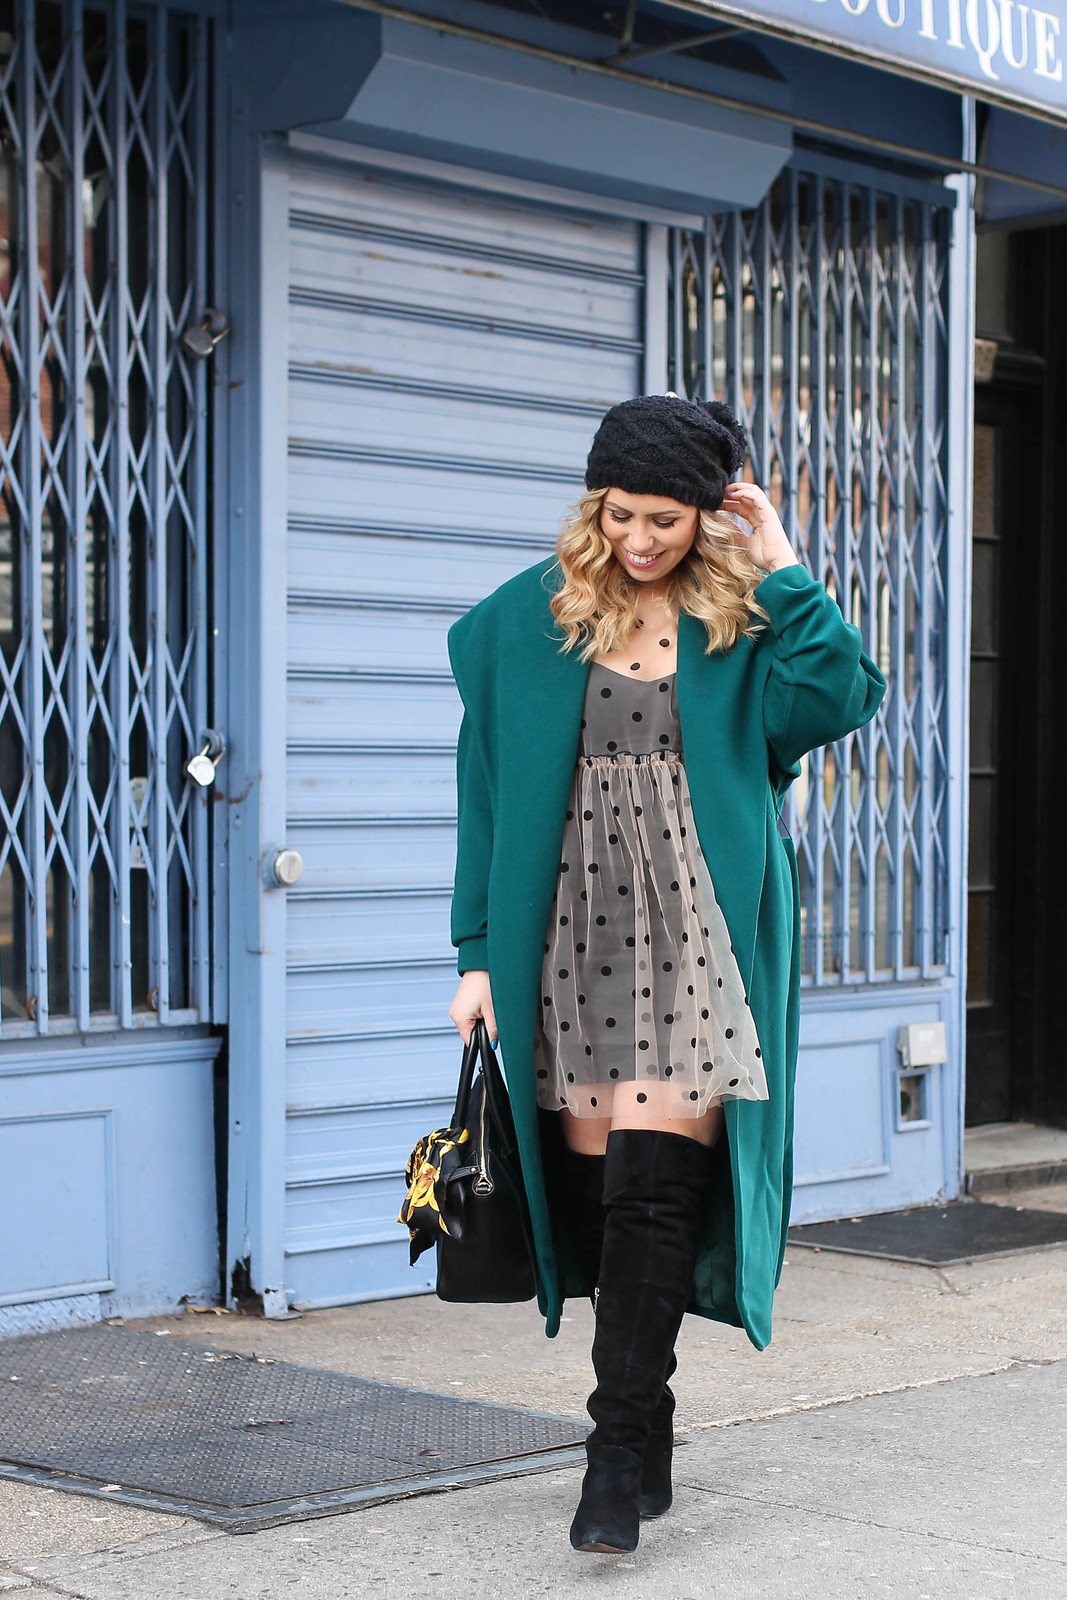 Green Winter Outfit Emerald Long Coat ASOS Sheer Polka Dot Dress Black OTK Suede Boots